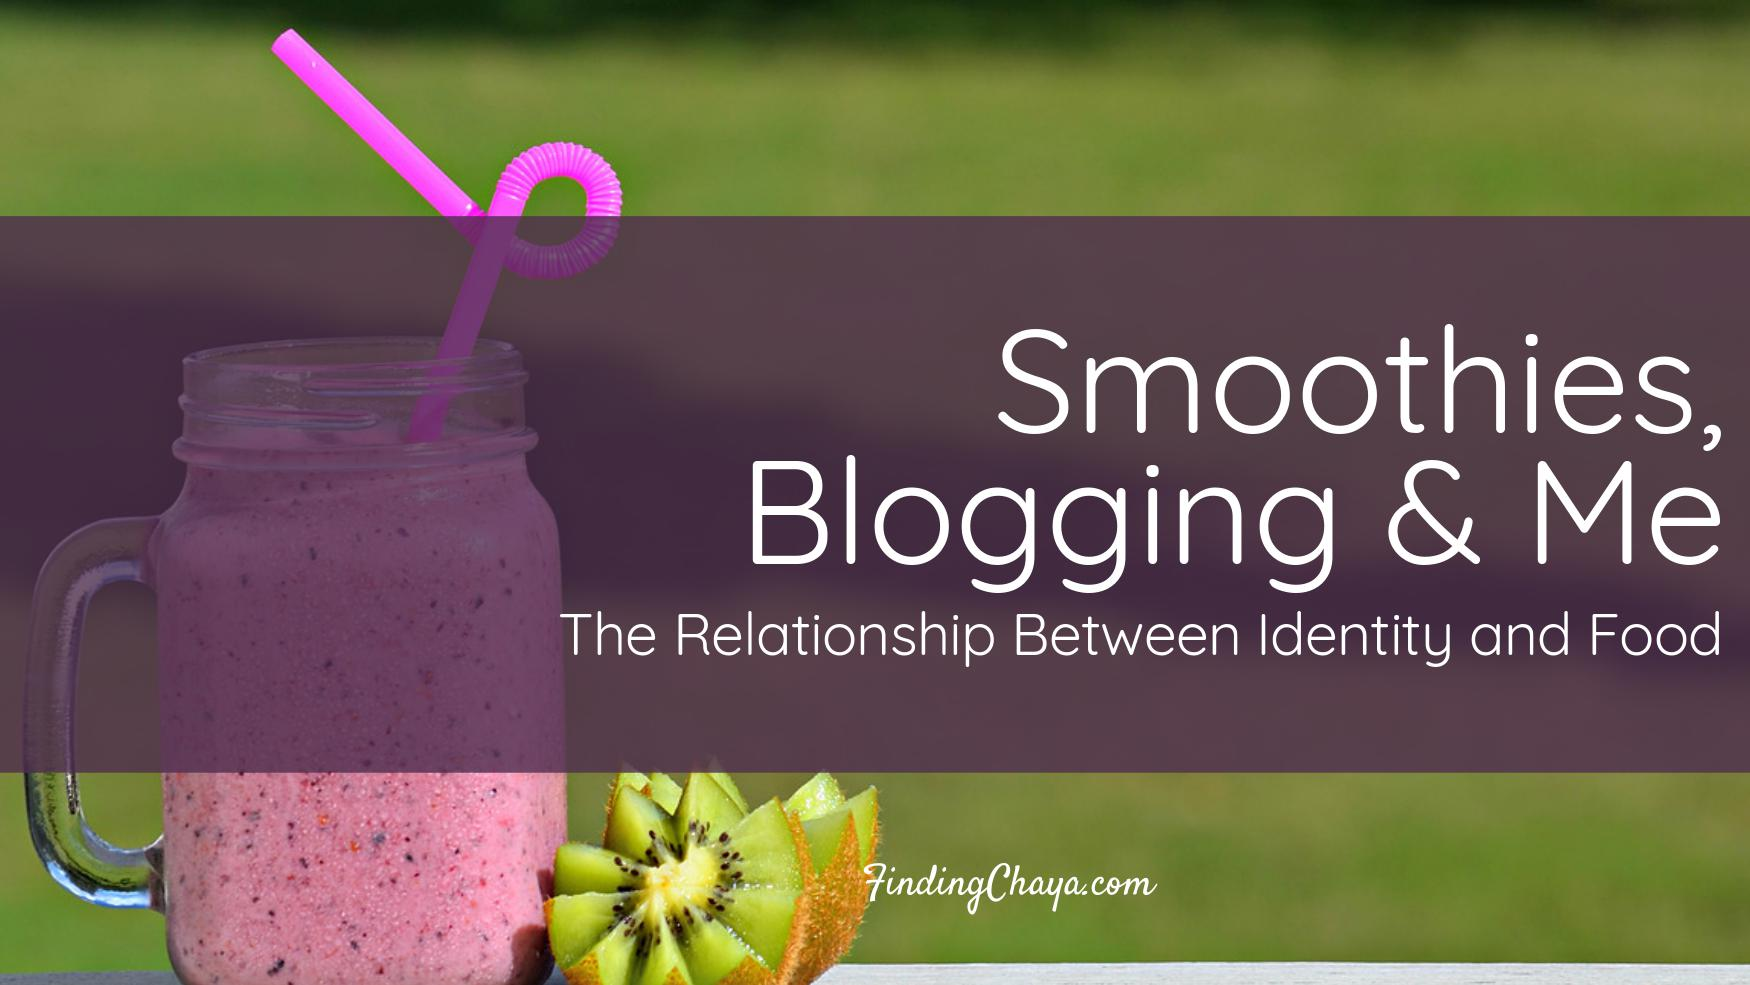 Smoothies, Blogging, and Me